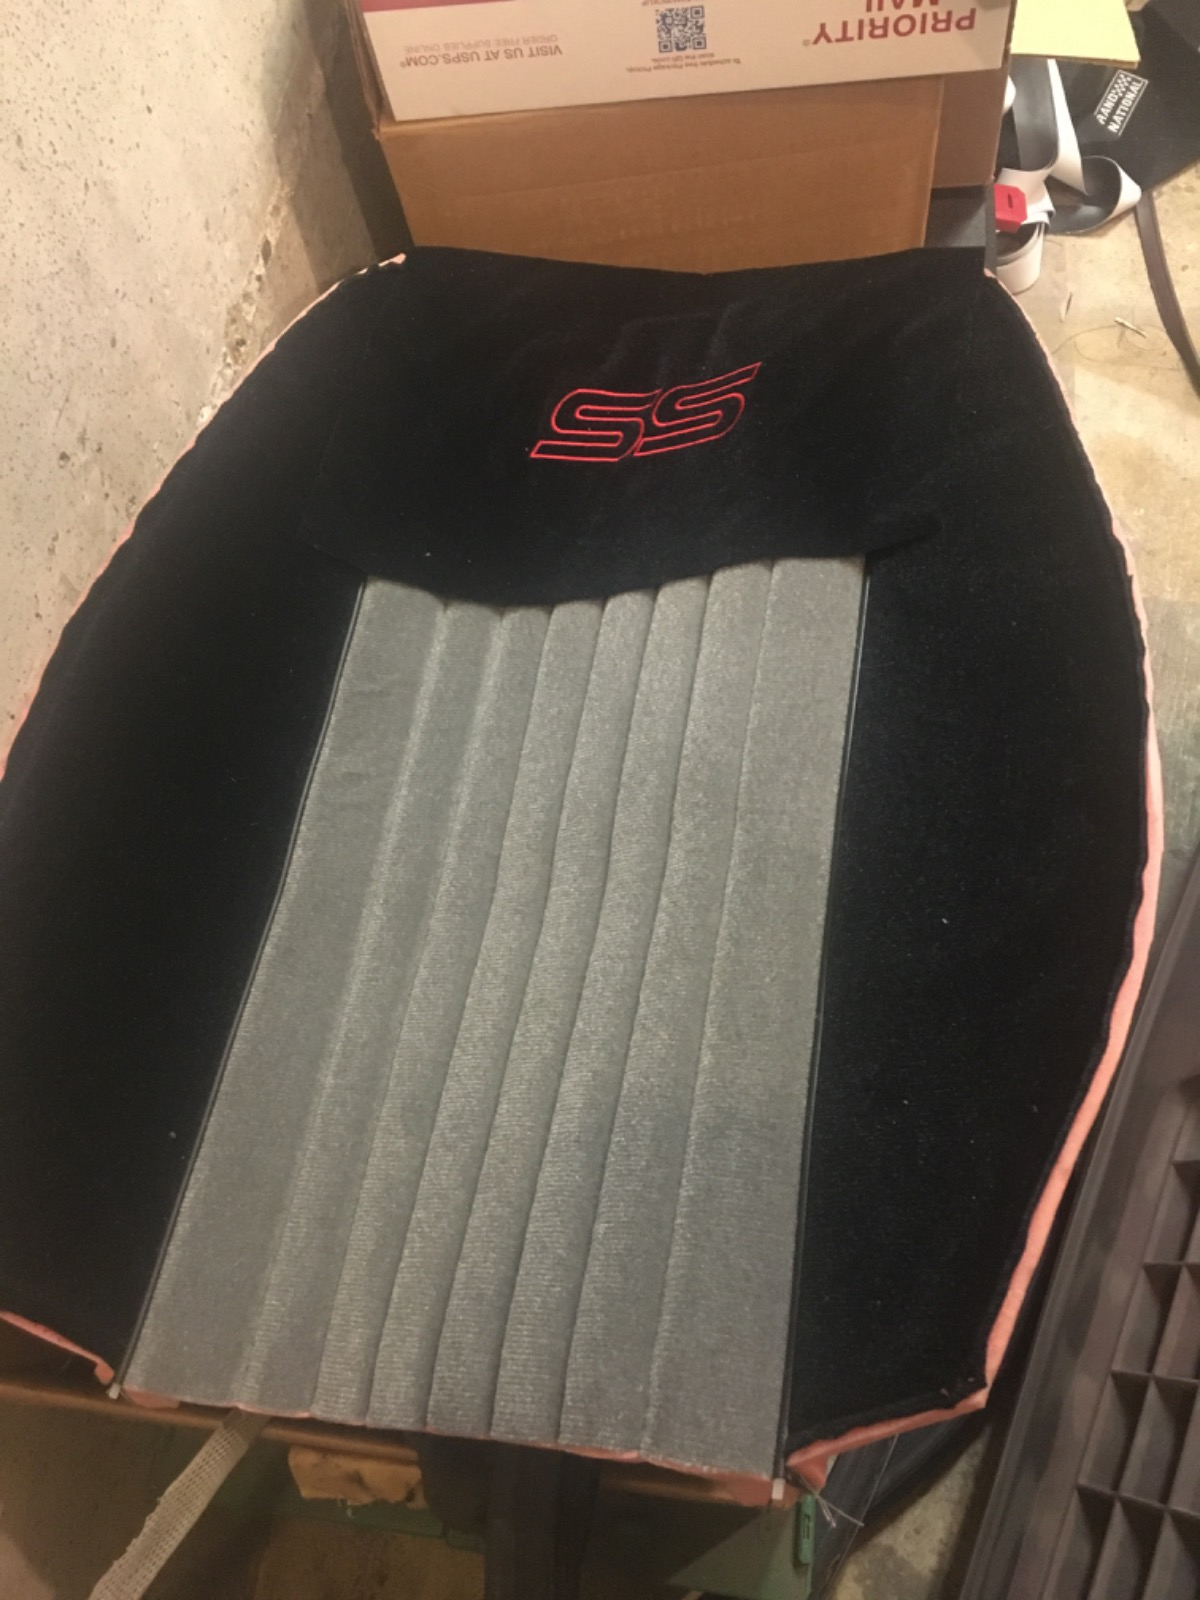 Monte Carlo SS upholstery kit black and grey all f